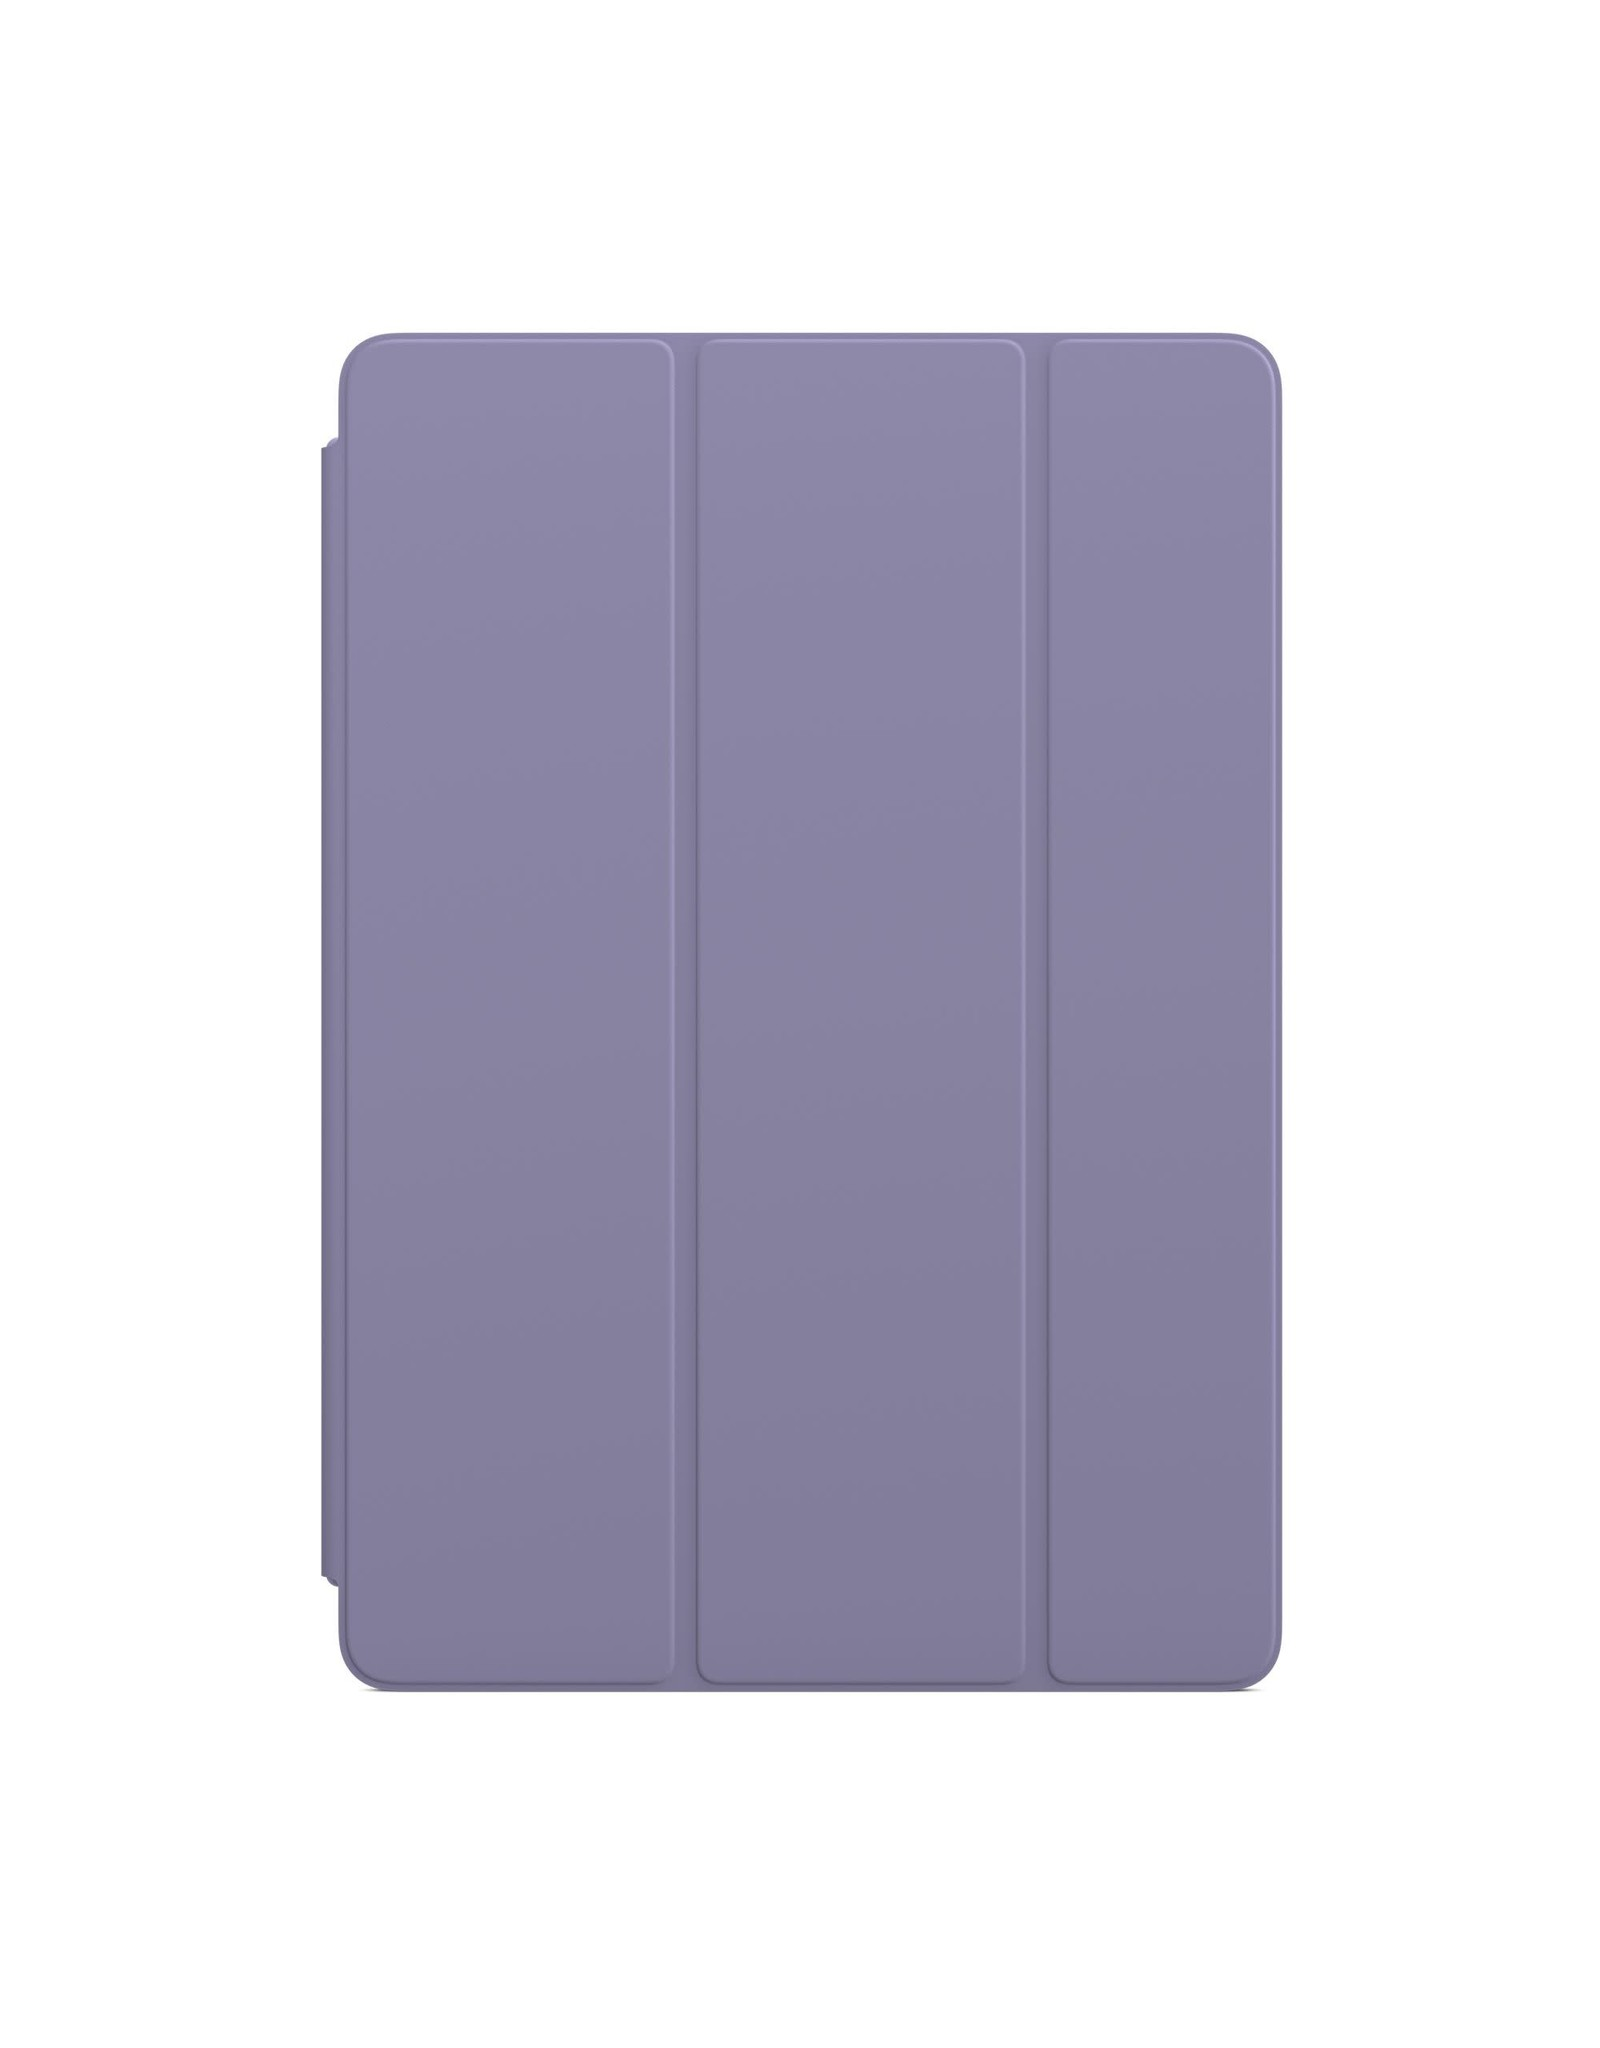 Apple Apple Smart Cover for iPad - Lavender - (7th/8th/9th Gen), iPad Air (3rd generation) & iPad Pro 10.5-inch